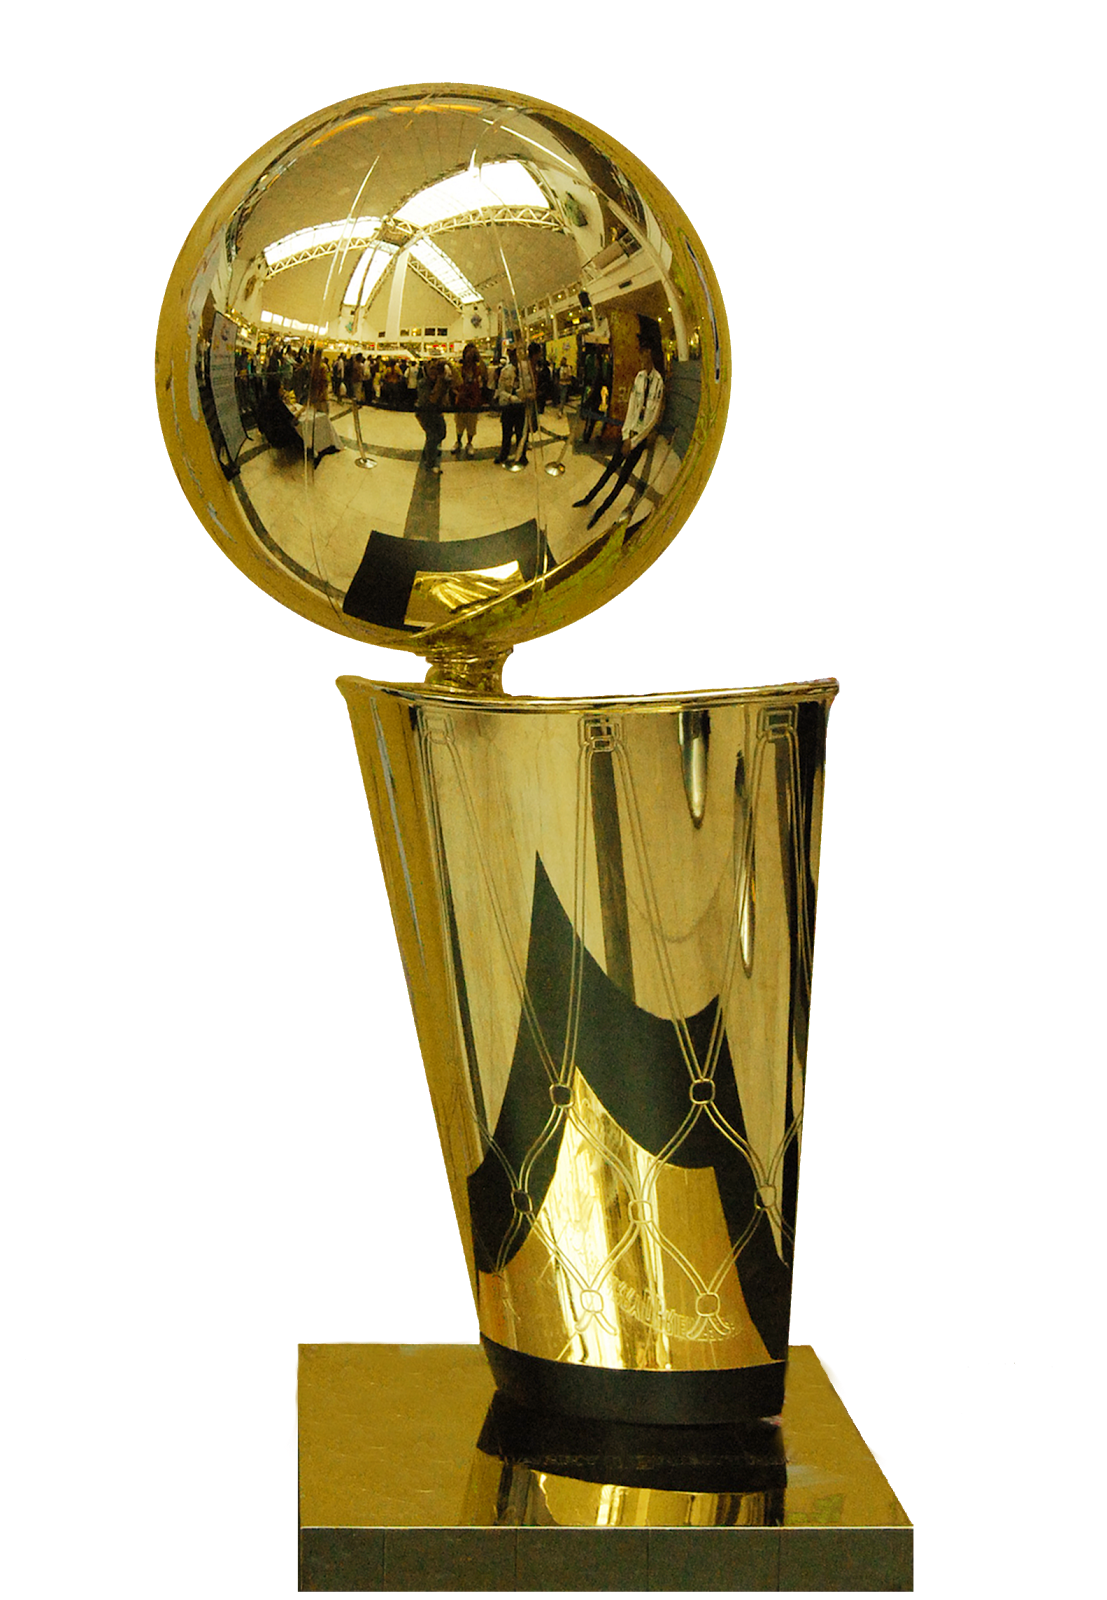 Nba mvp trophy png. Thekongblog finals interview w